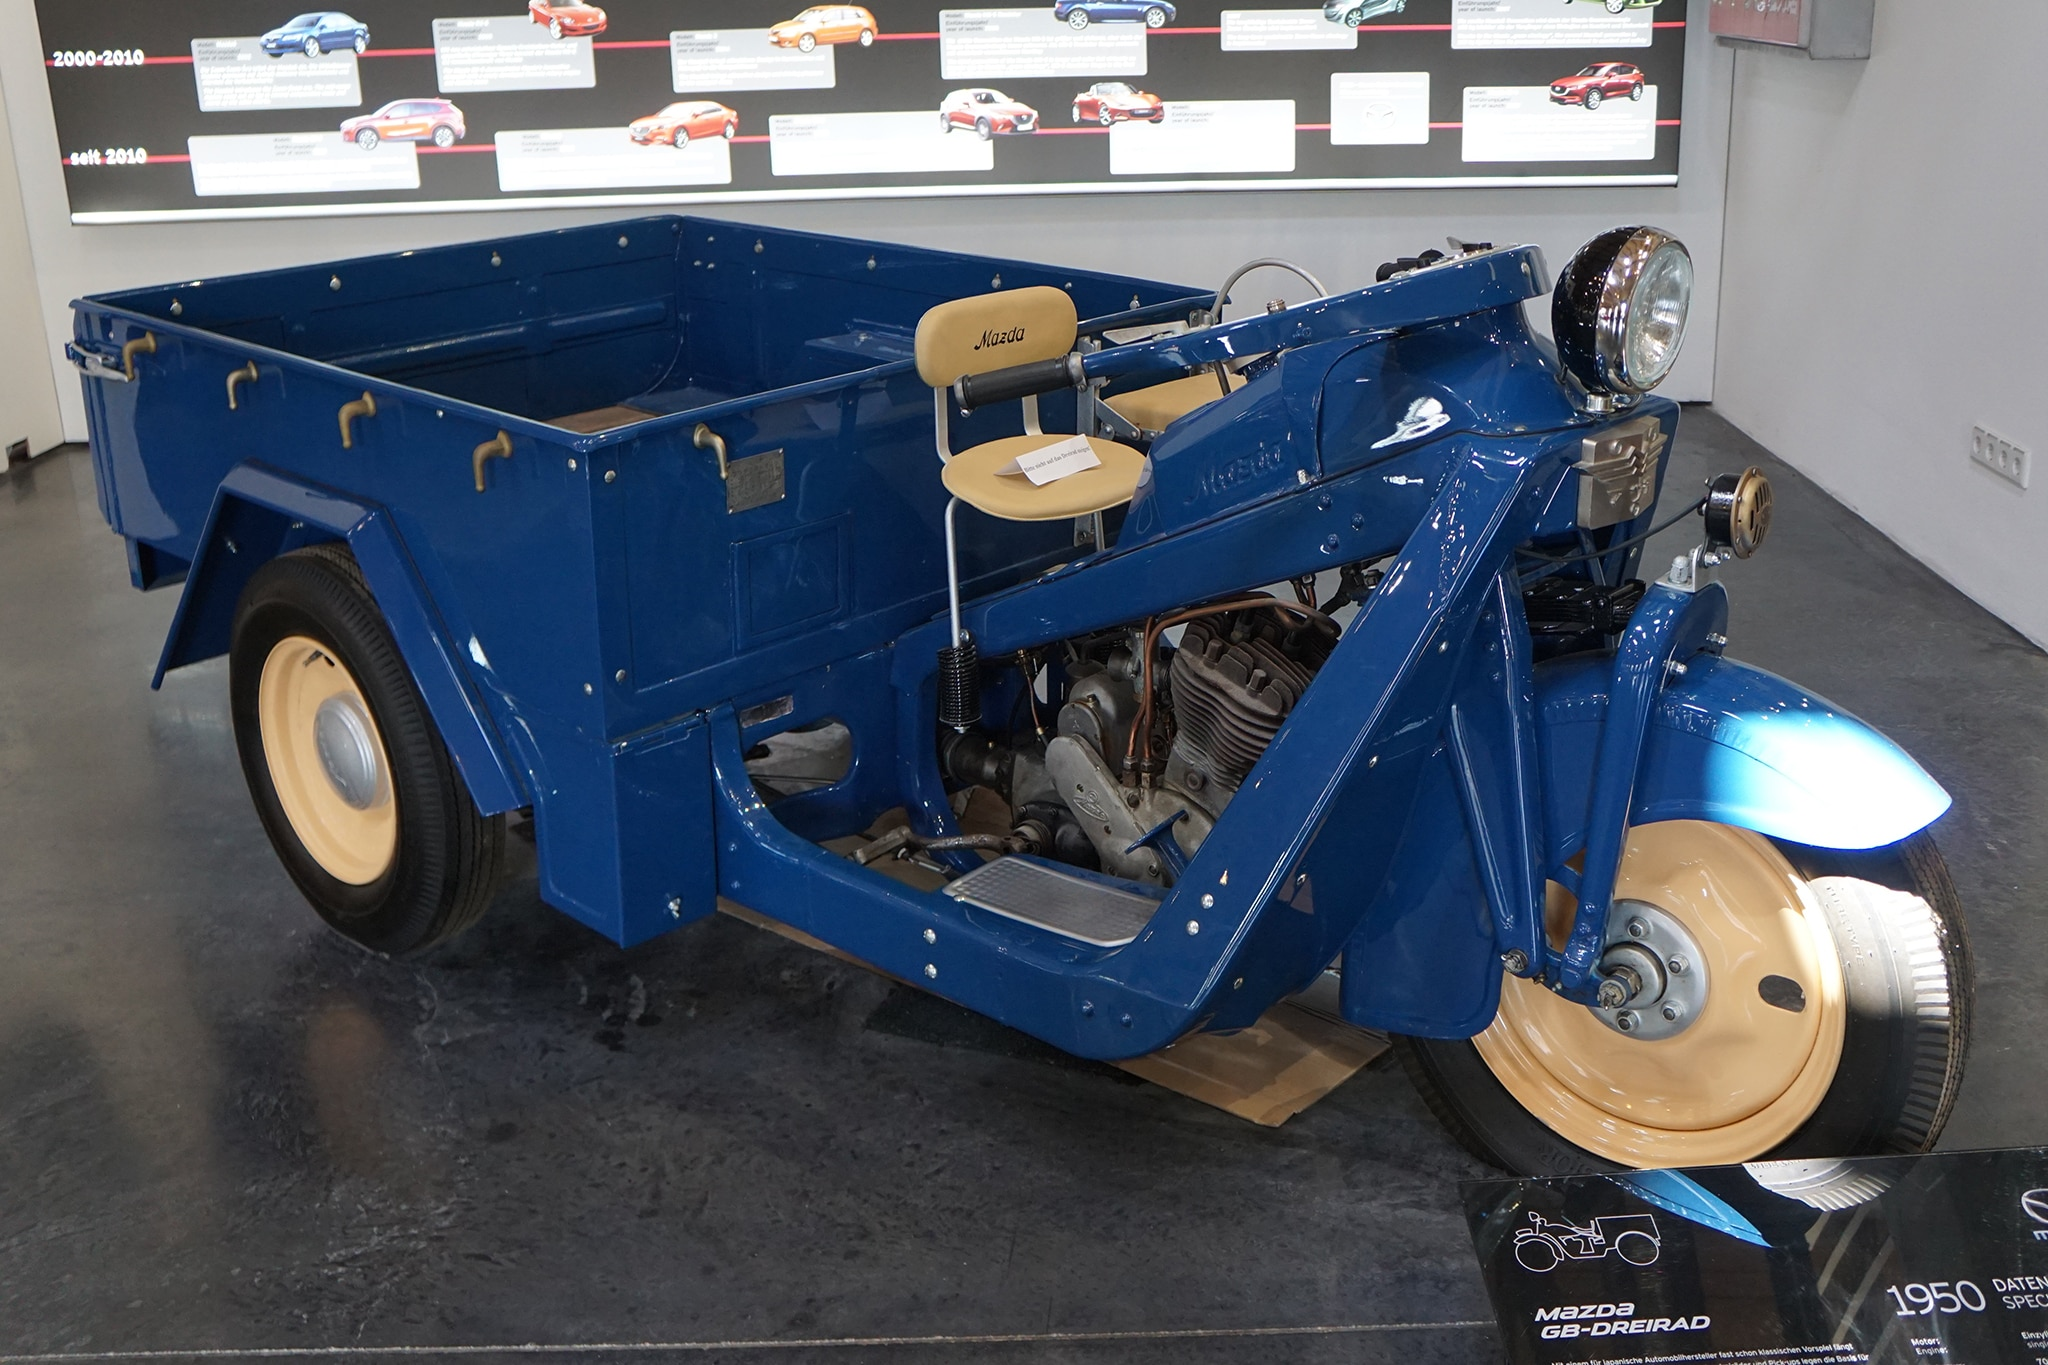 Twenty Cool Cars from Frey\'s Mazda Classic Car Museum | Automobile ...